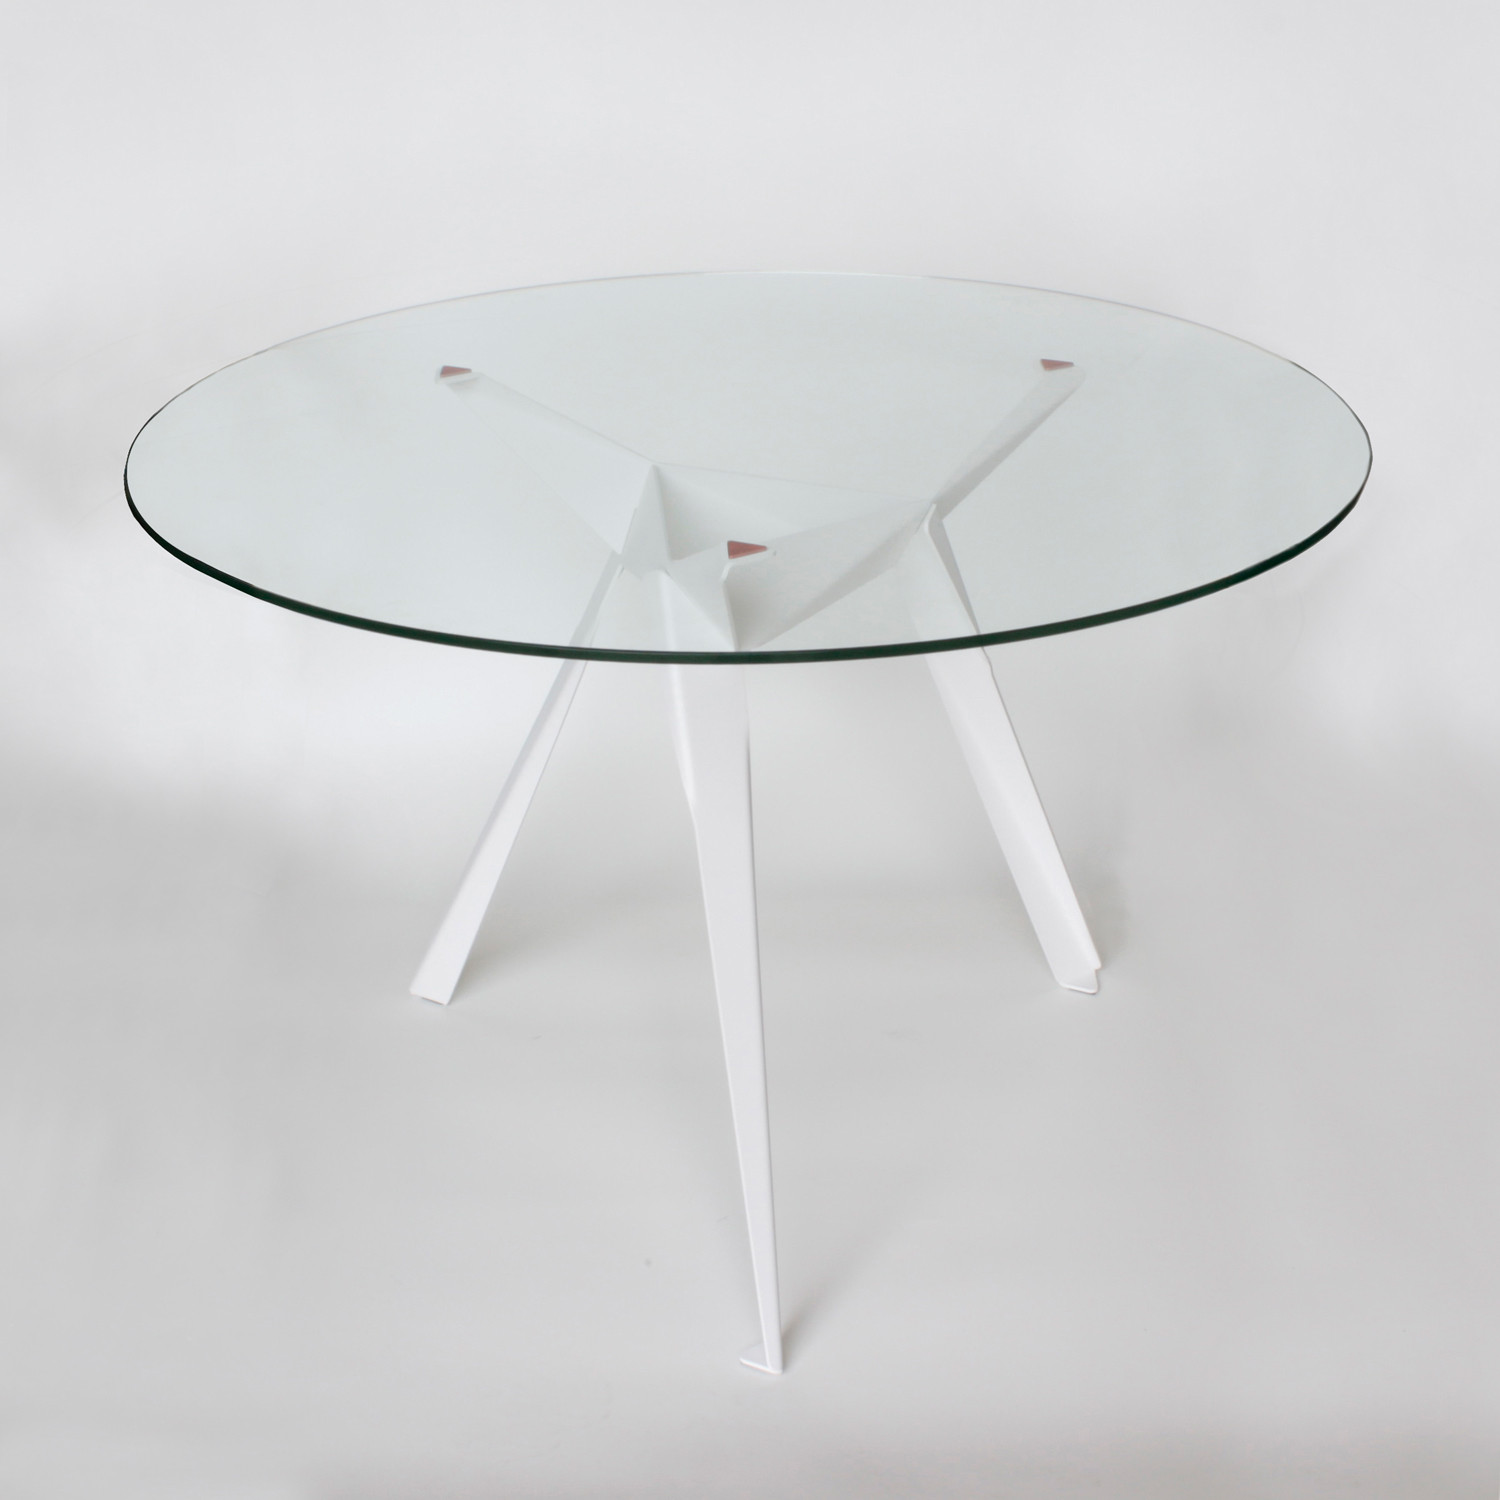 Origami Side Table // White Legs & Silver Pads